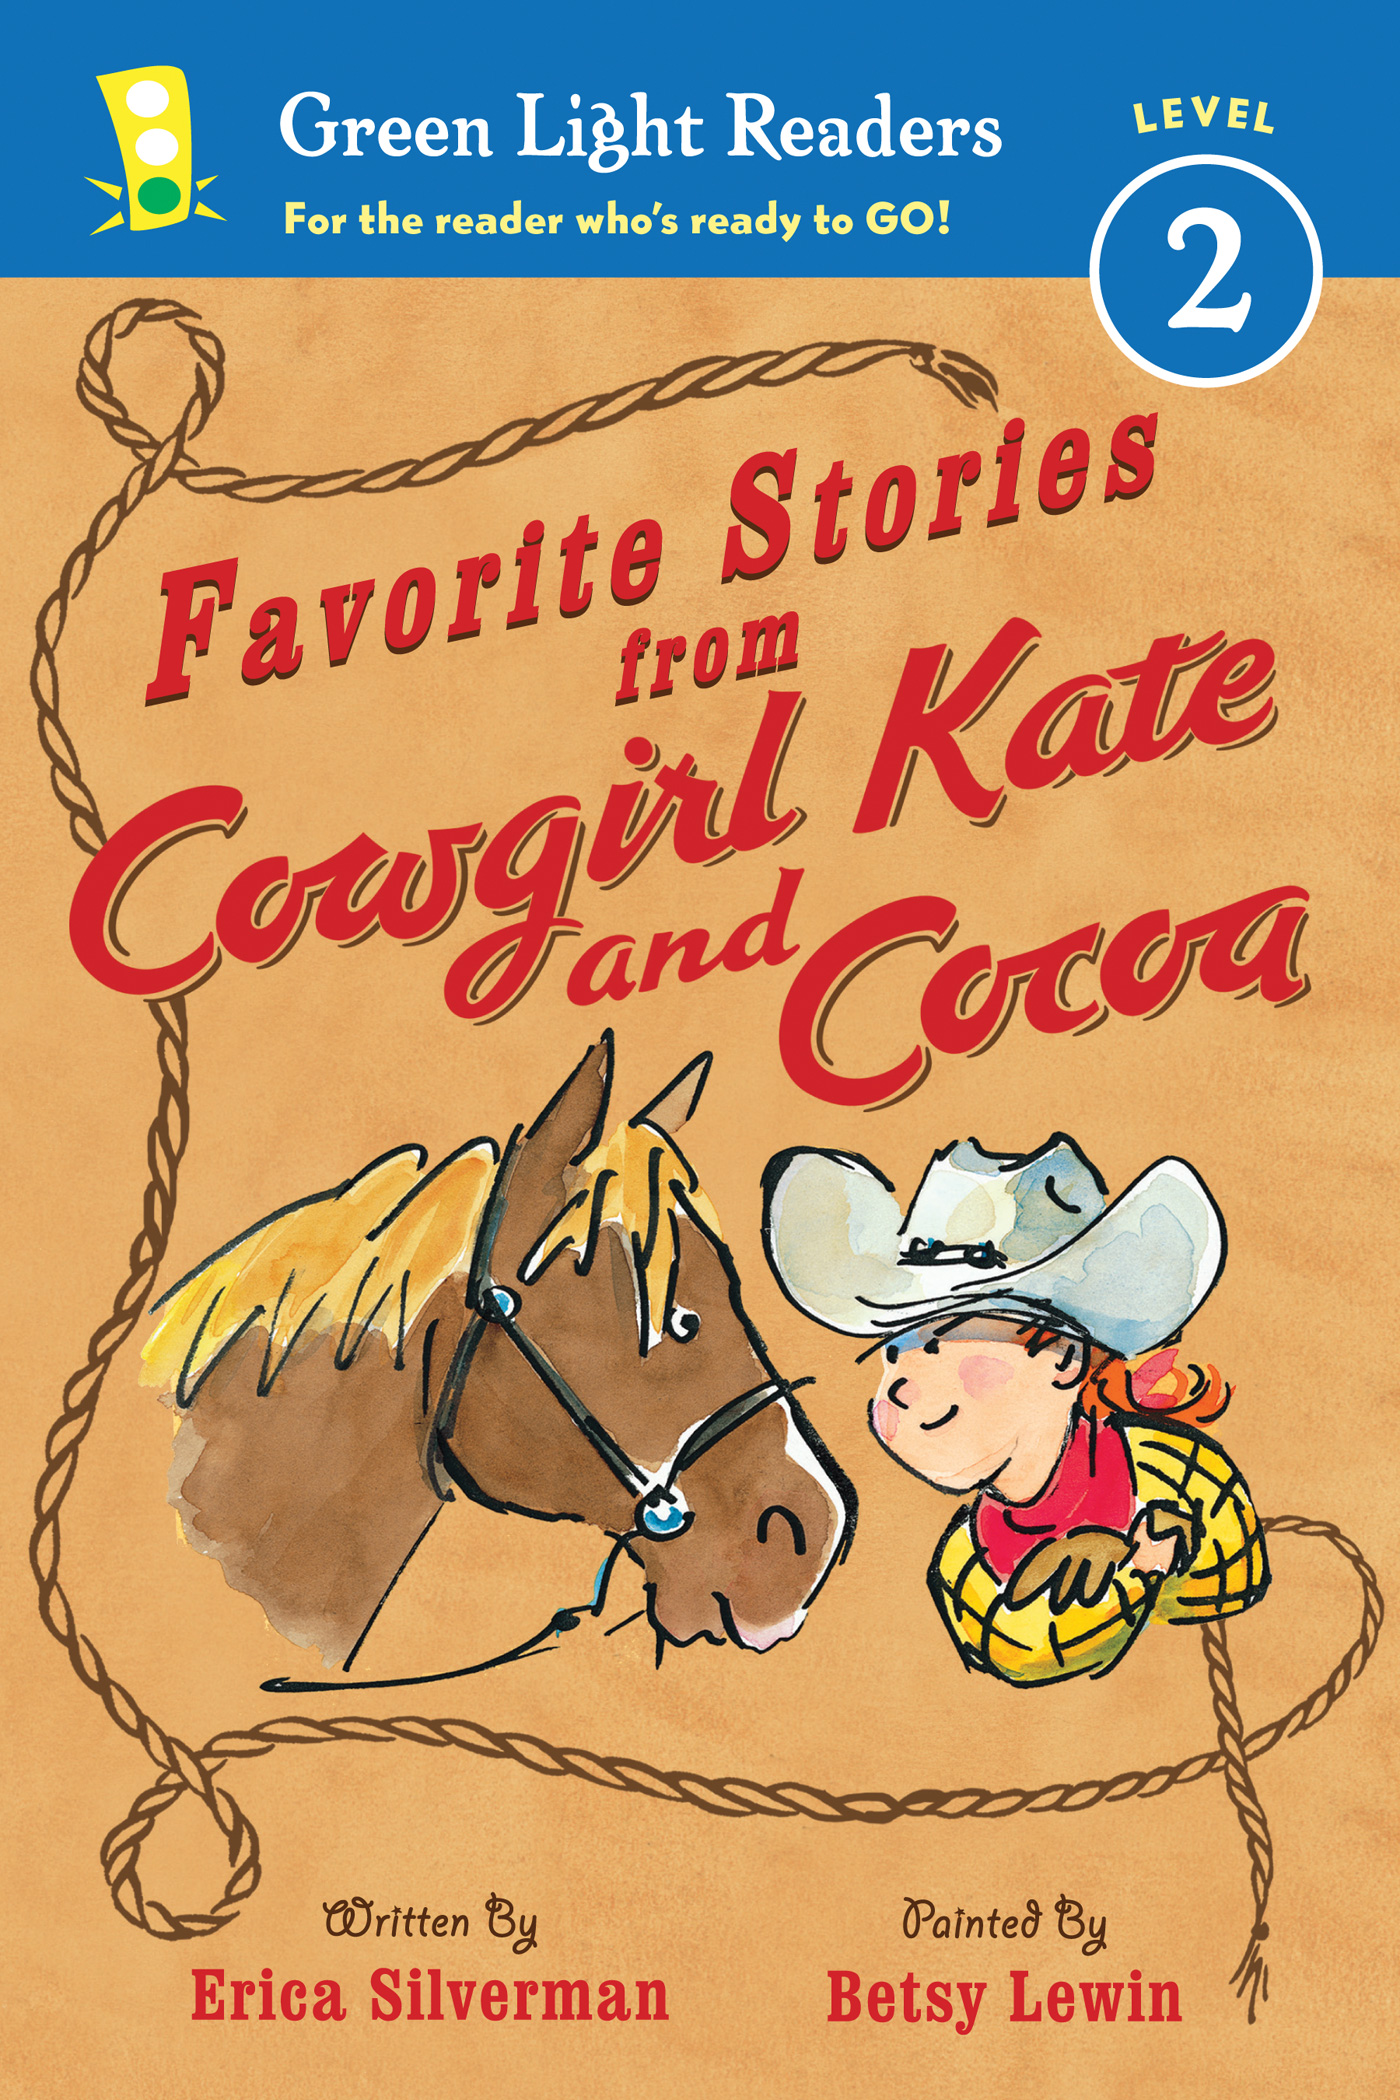 Favorite Stories from Cowgirl Kate and Cocoa-9780544022676